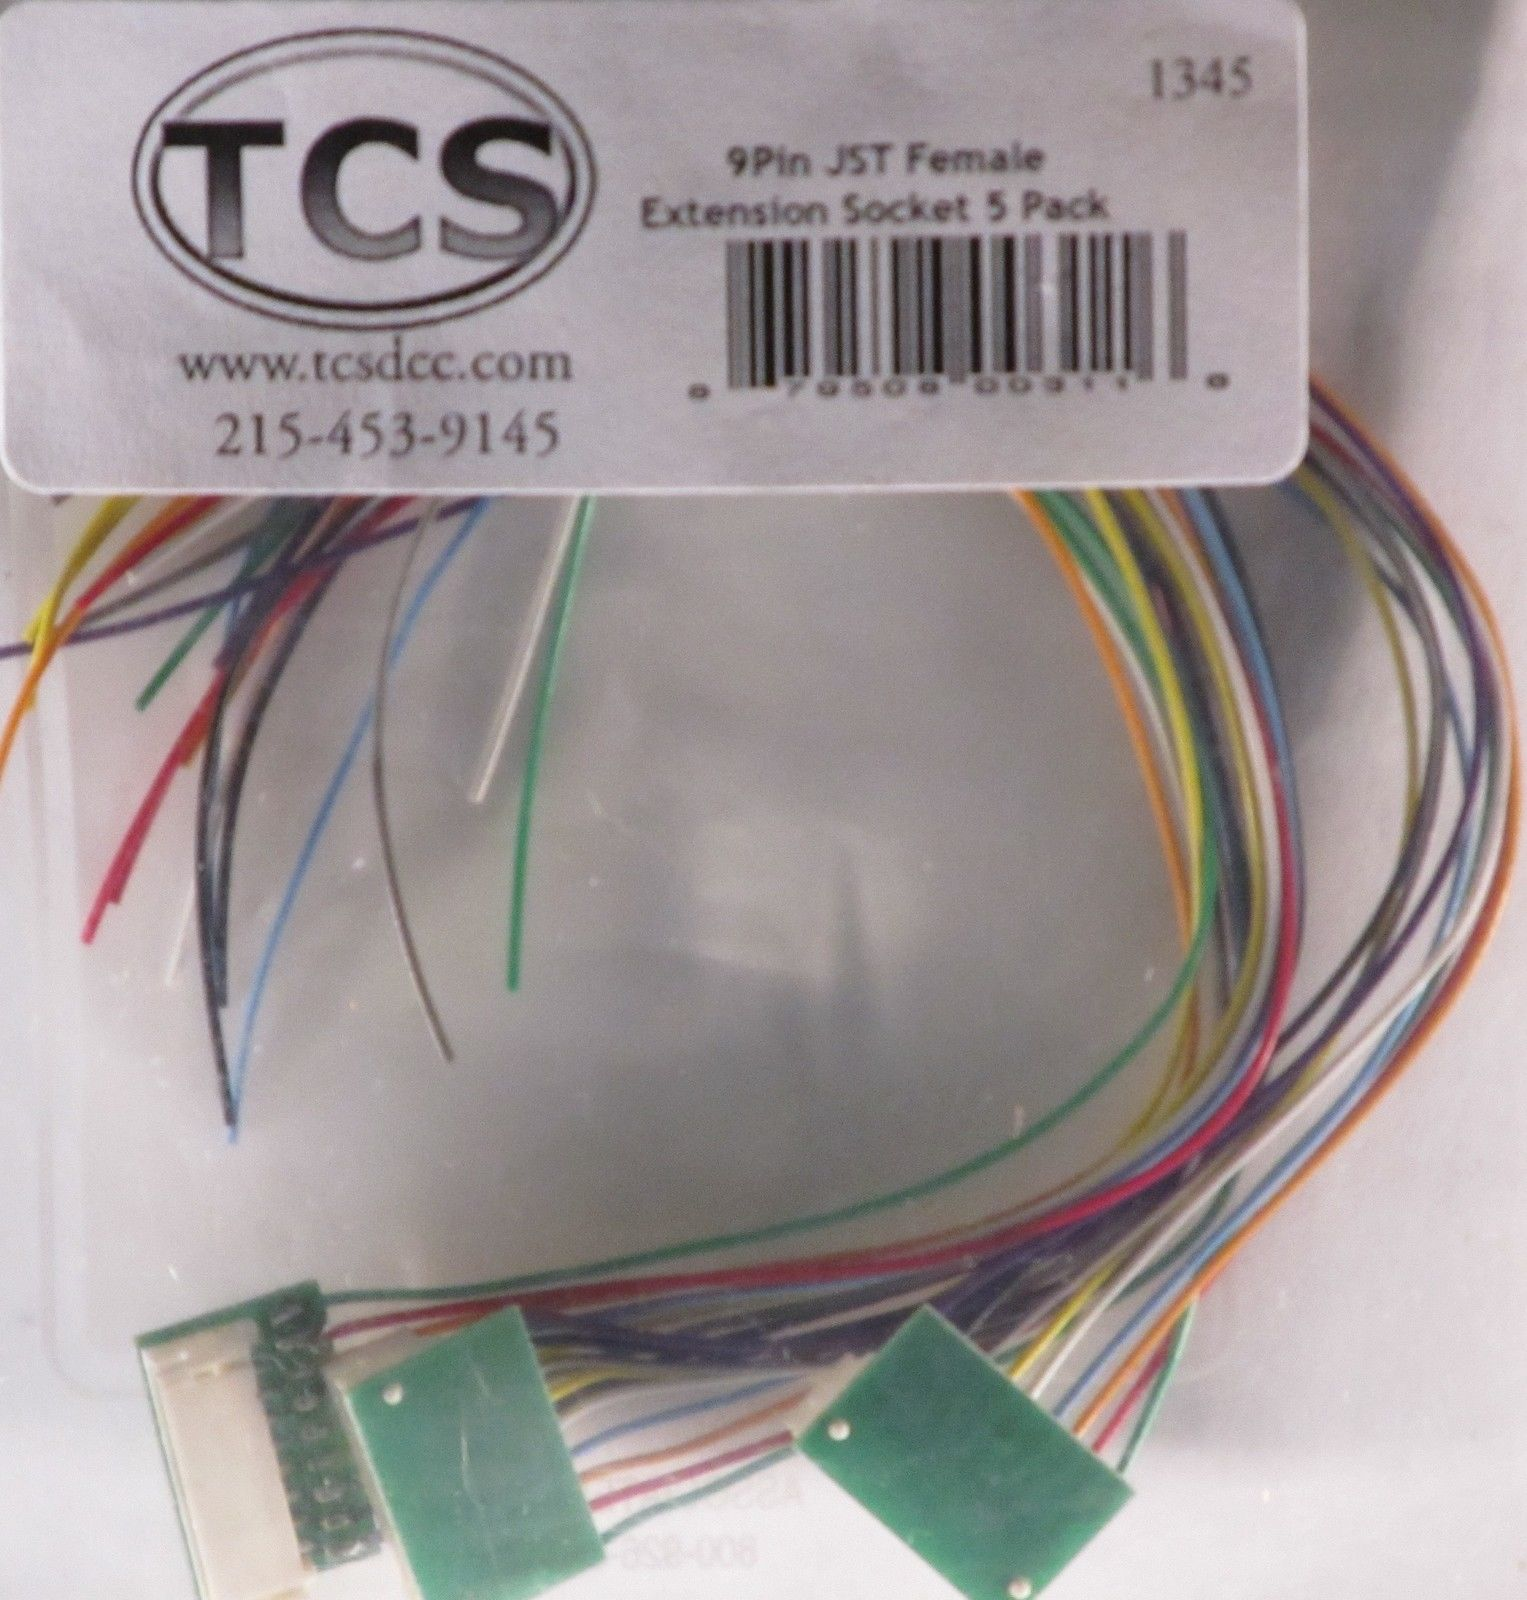 TCS HO 9 Pin JST Extension Socket NEW 1345 Free Shipping!  Pin Wiring Harness on